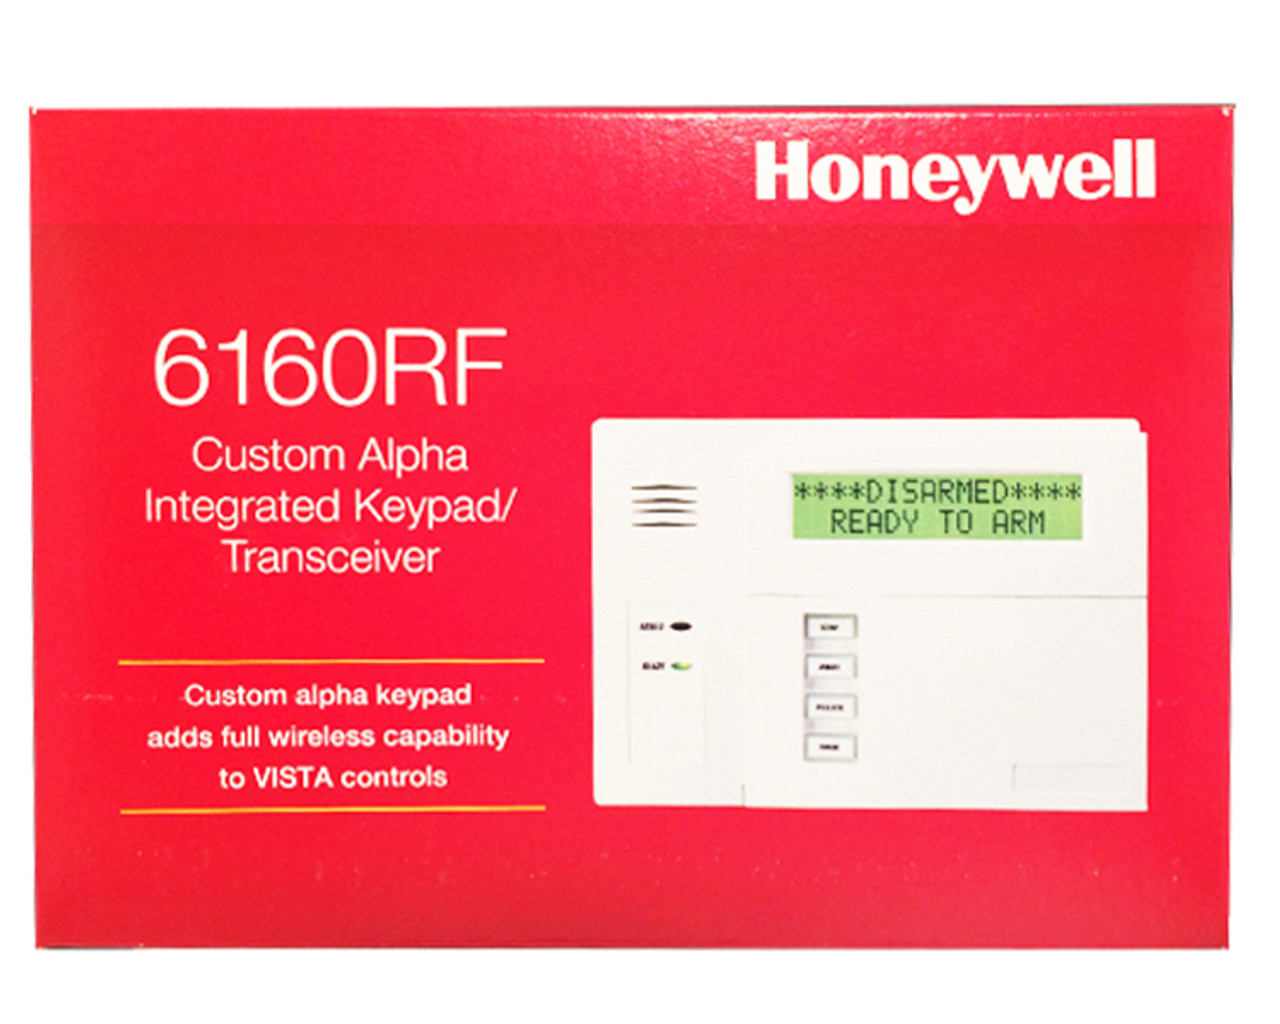 Honeywell 6160RF Custom Alpha Integrated Keypad/Transceiver